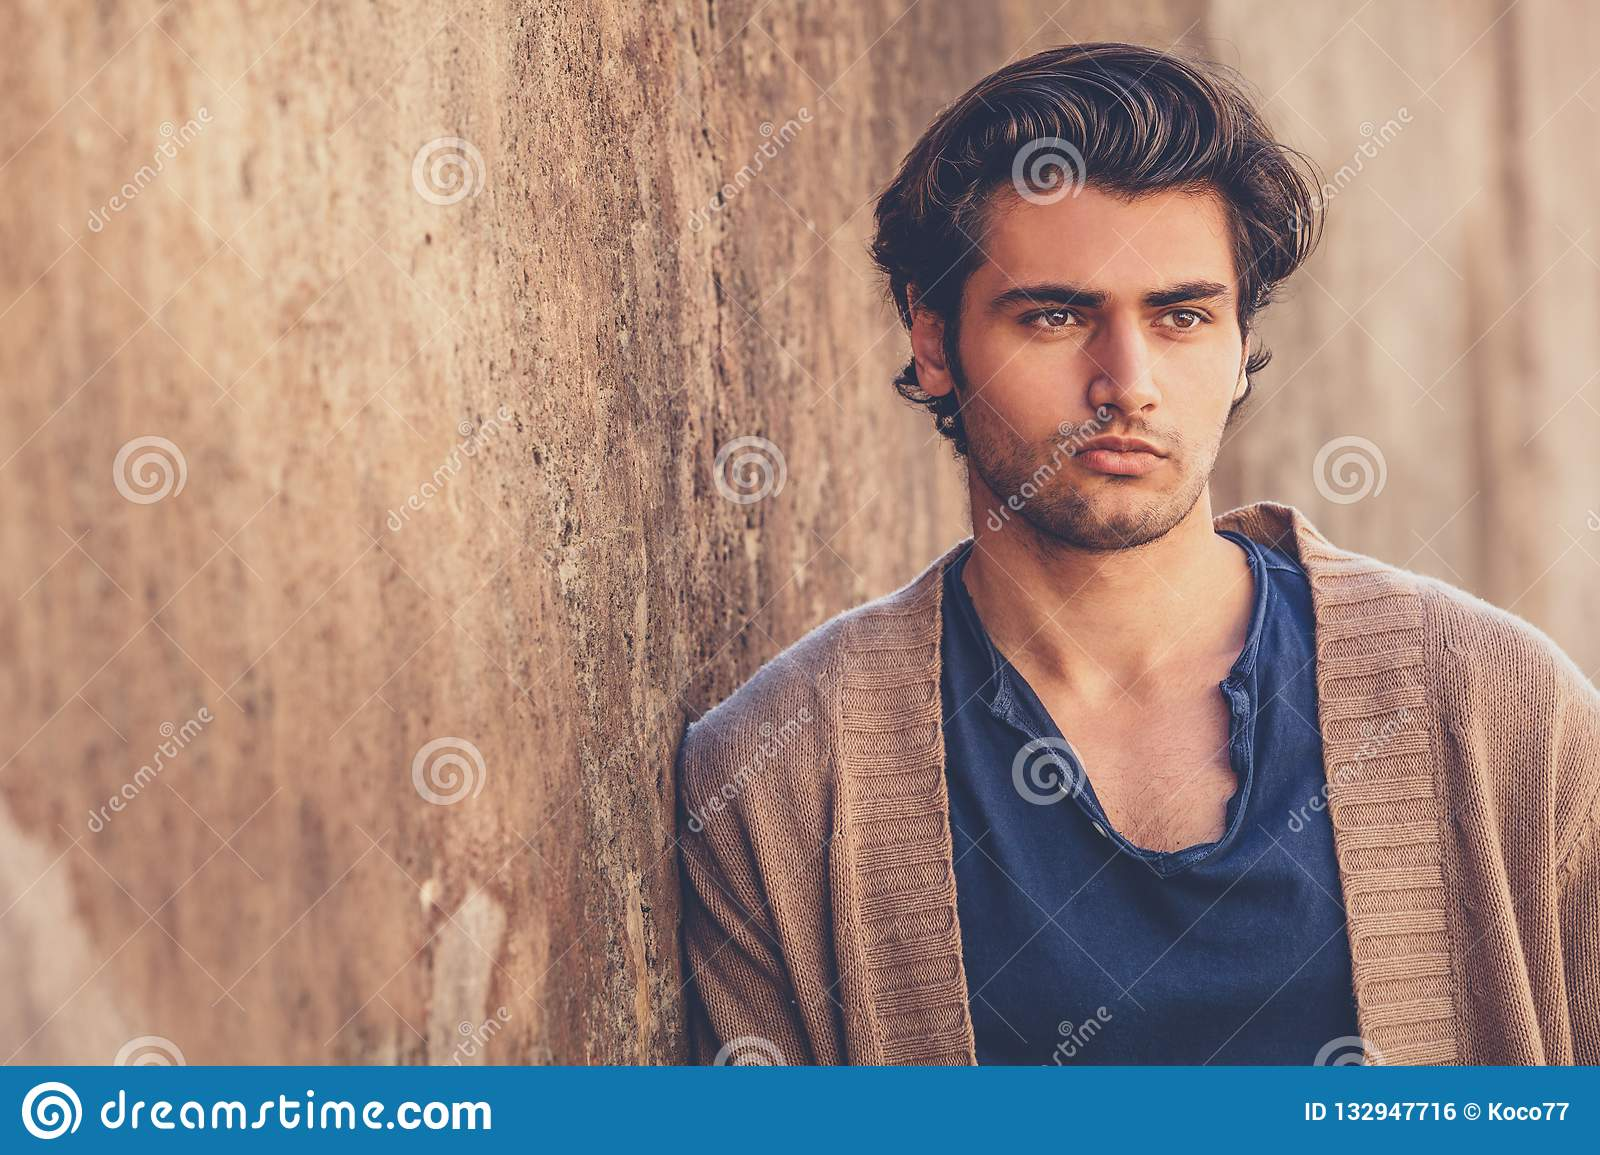 Portrait of handsome and charming young man. He is leaning against an outdoor wall.